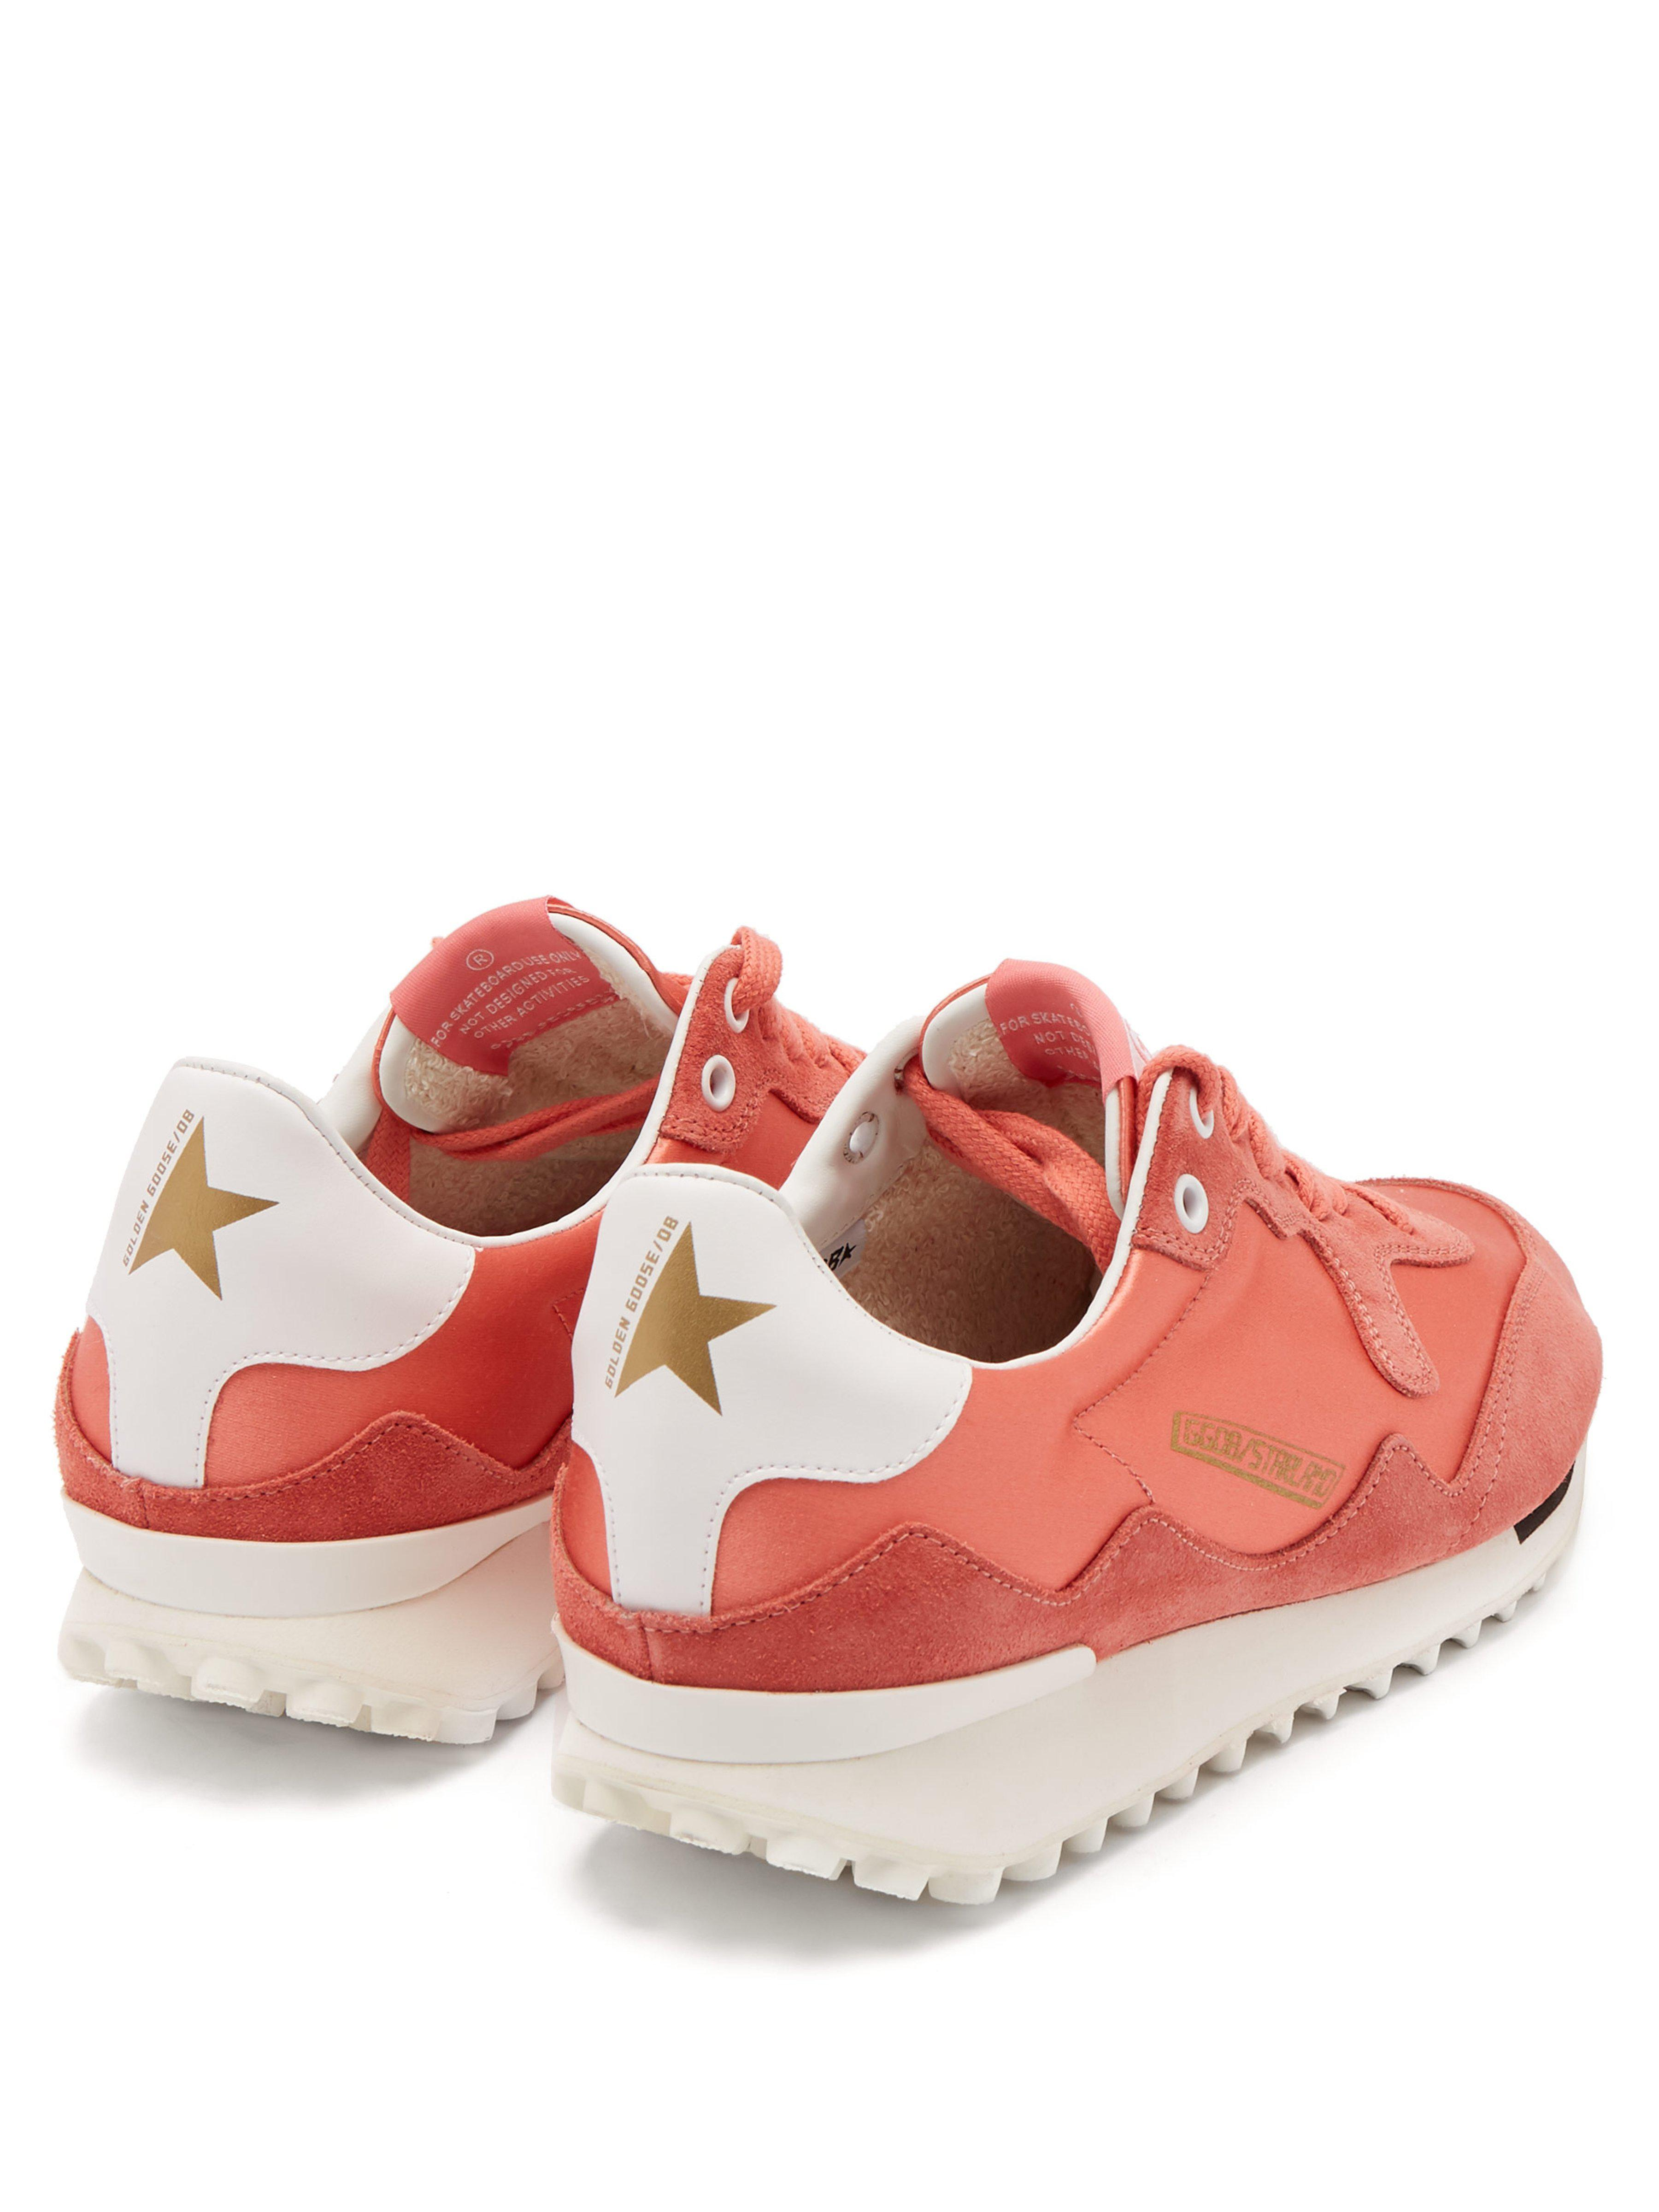 Golden Goose Deluxe Brand Paneled Satin And Suede Sneakers Coral in Pink